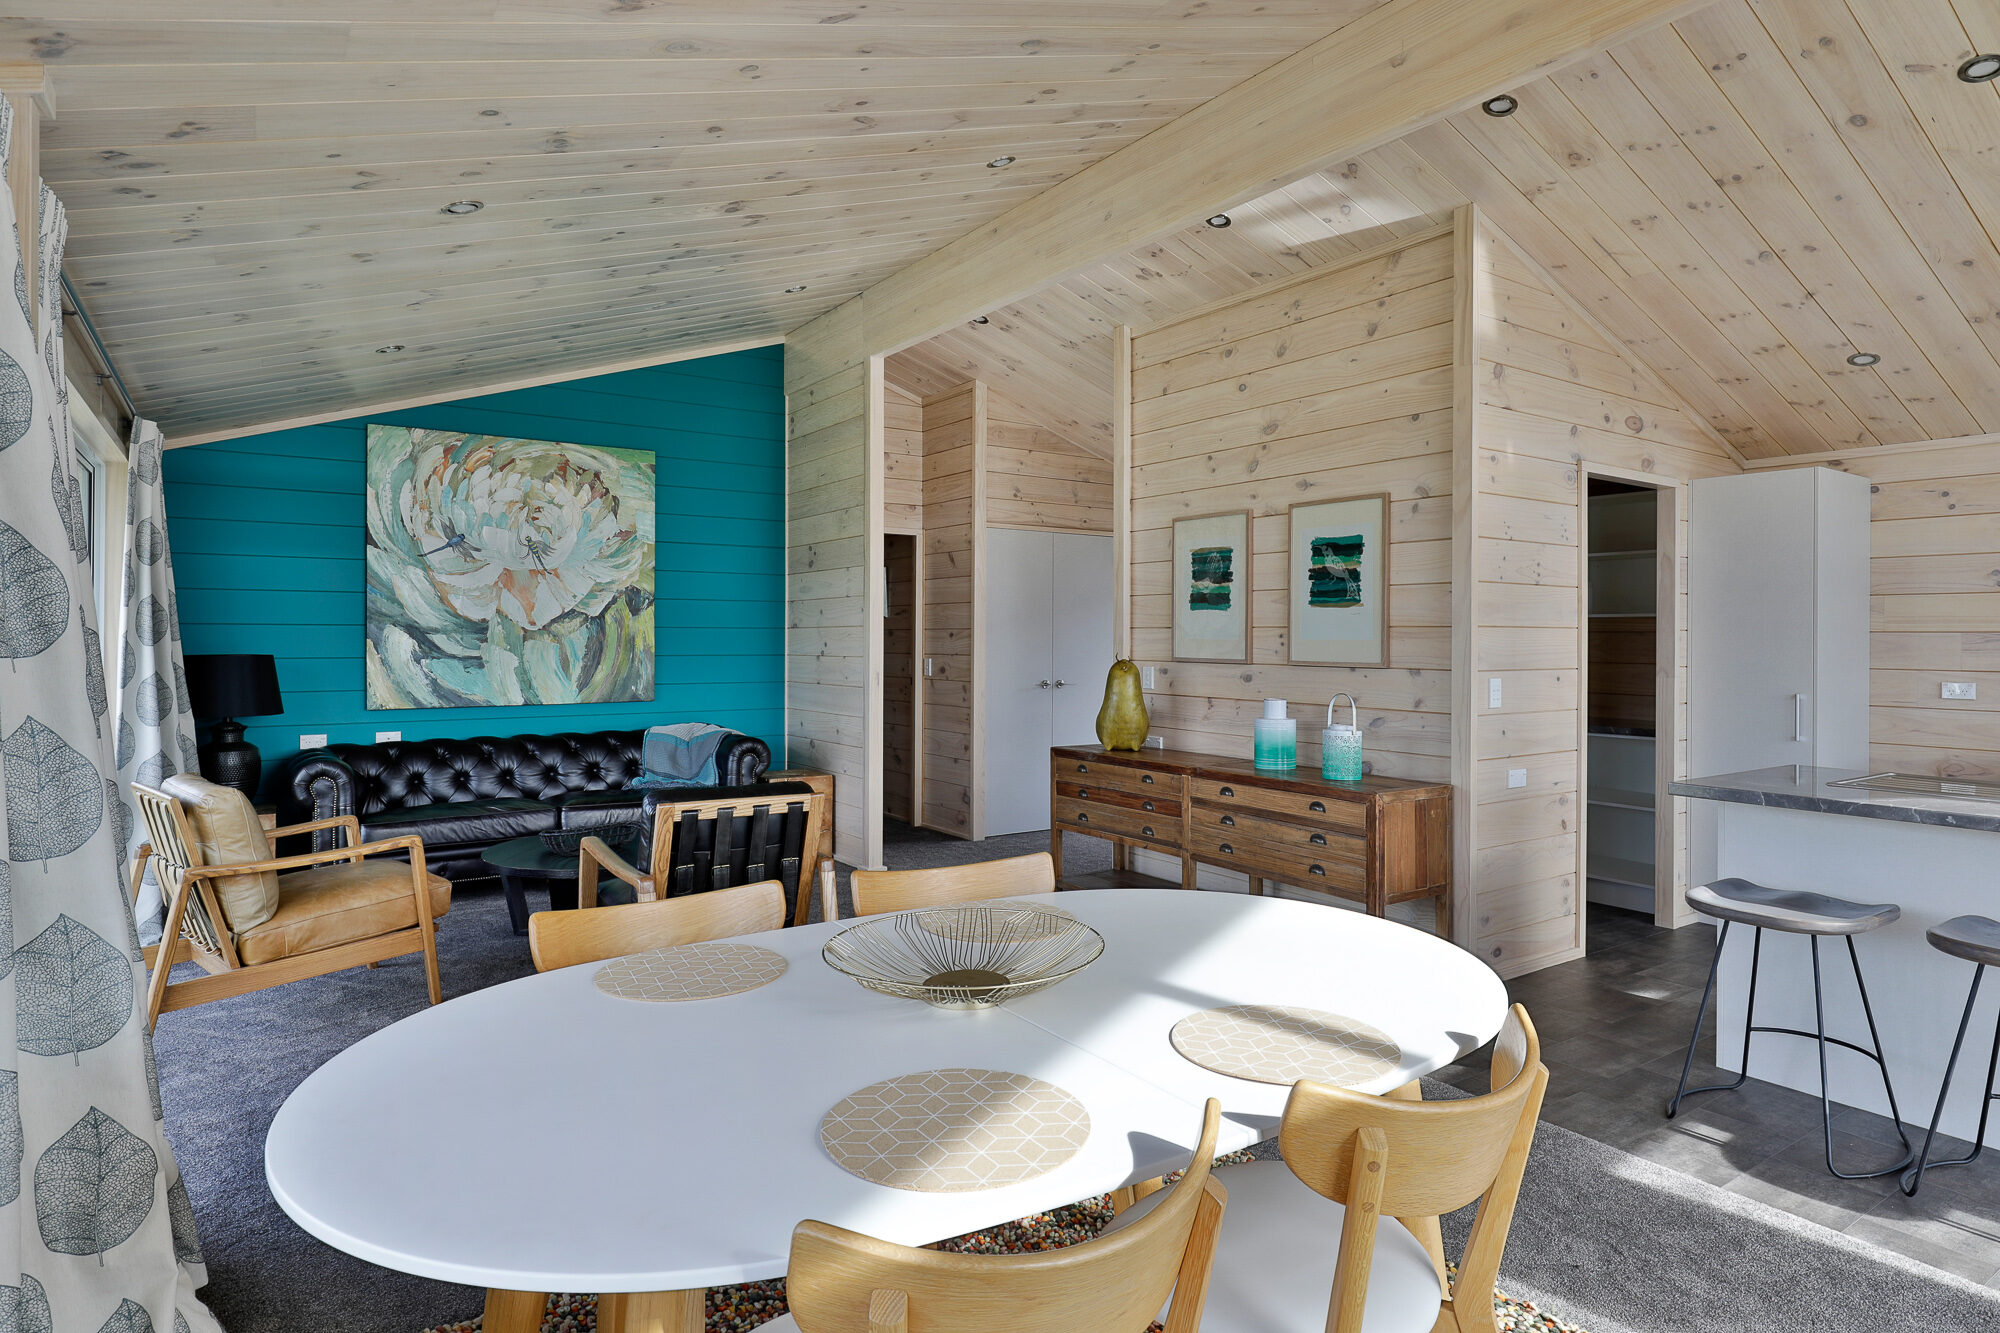 Lockwood feature wall gives pop of colour